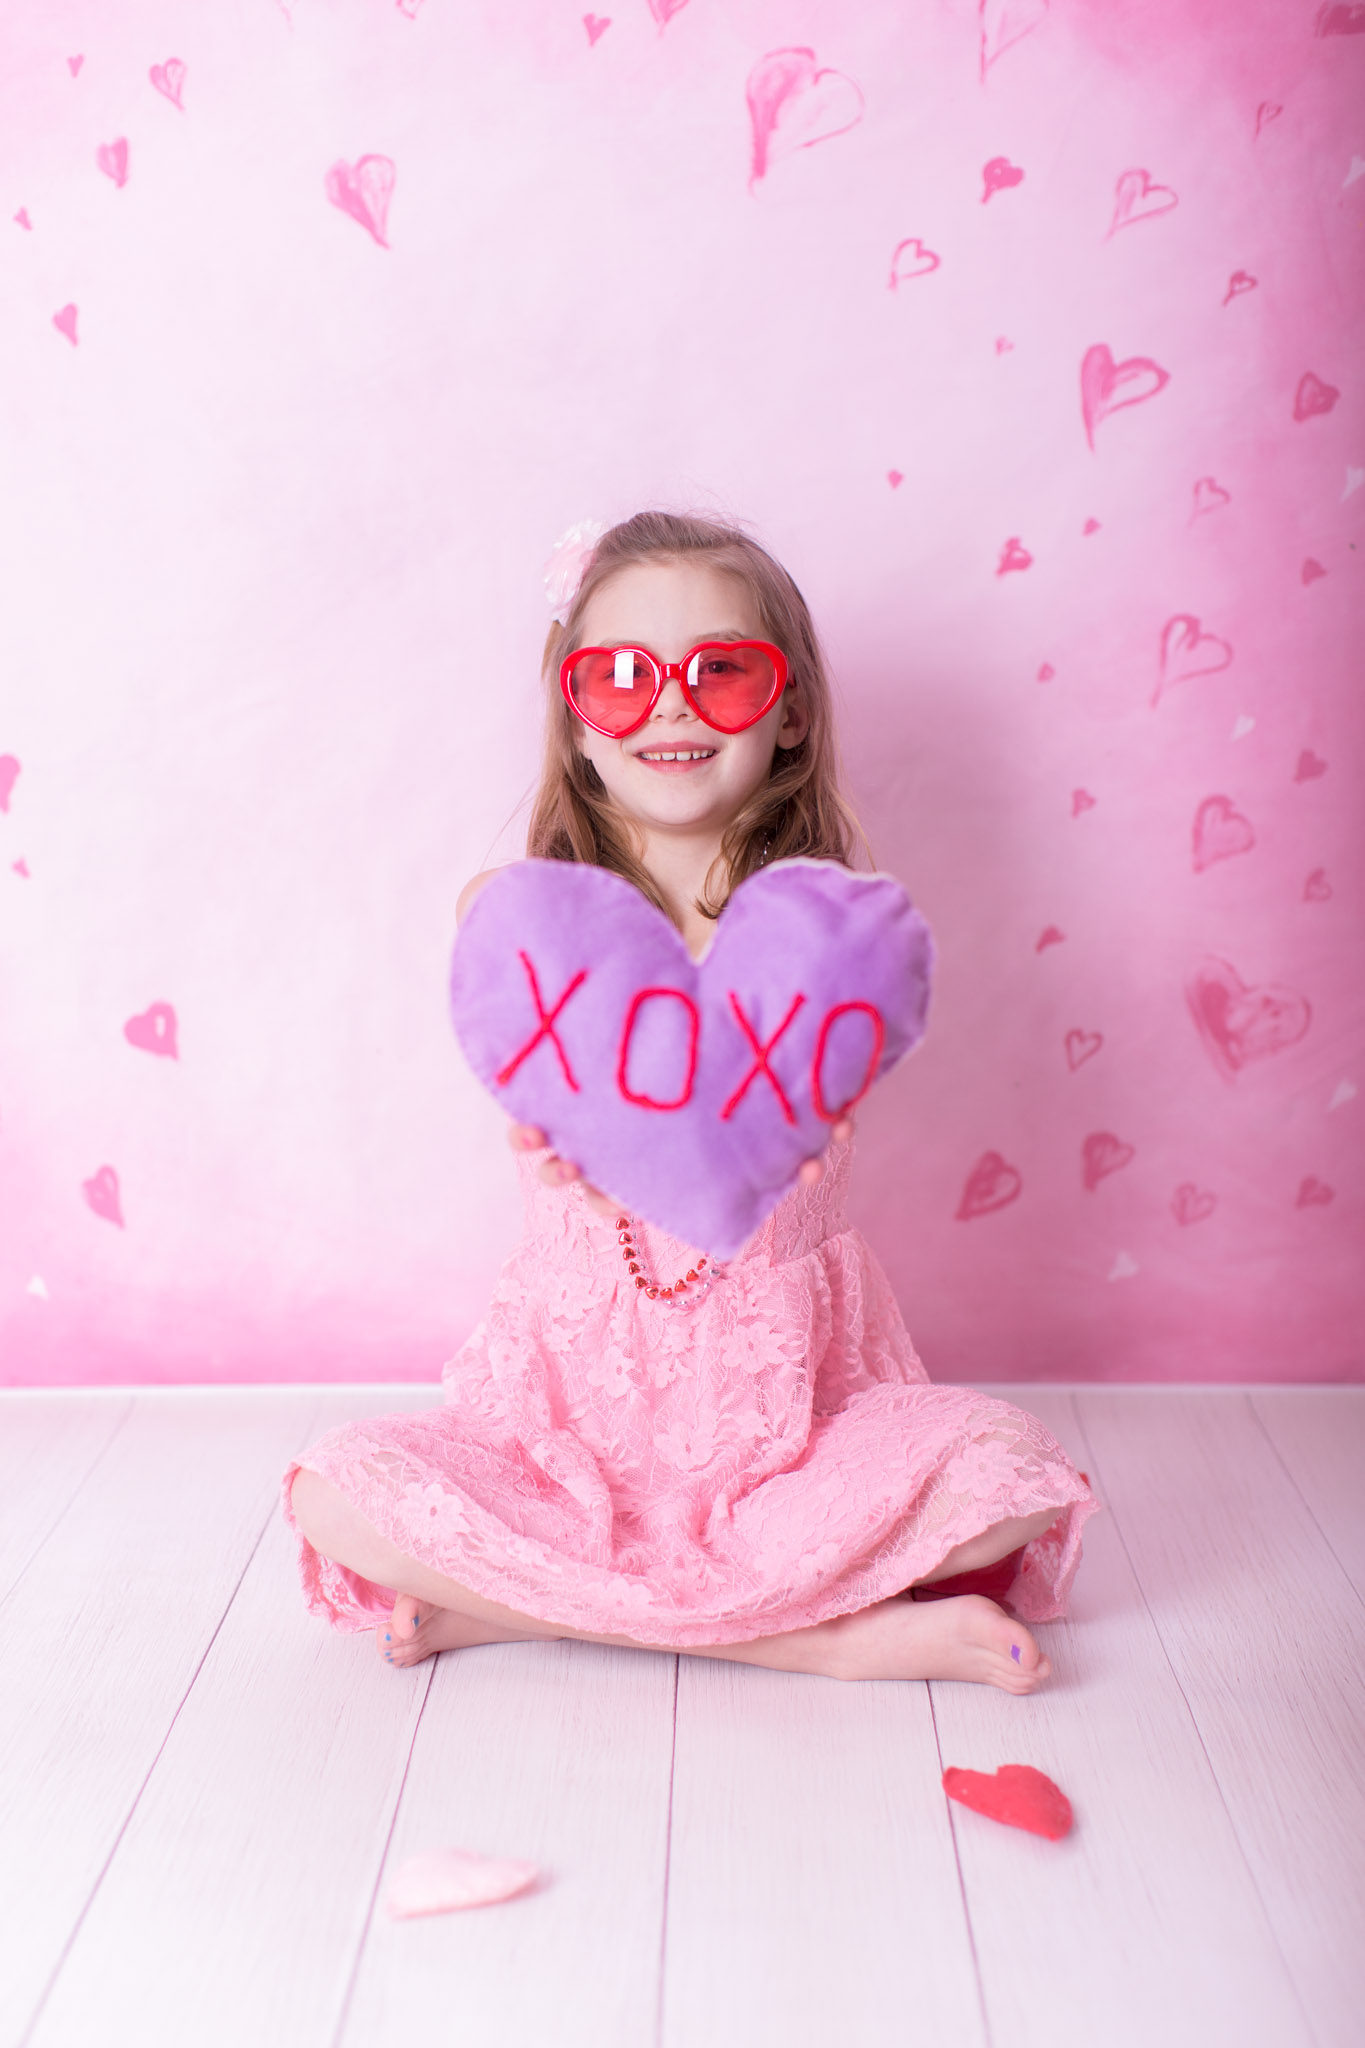 Image of girl wearing heart glasses and holding conversation heart with xoxo on it